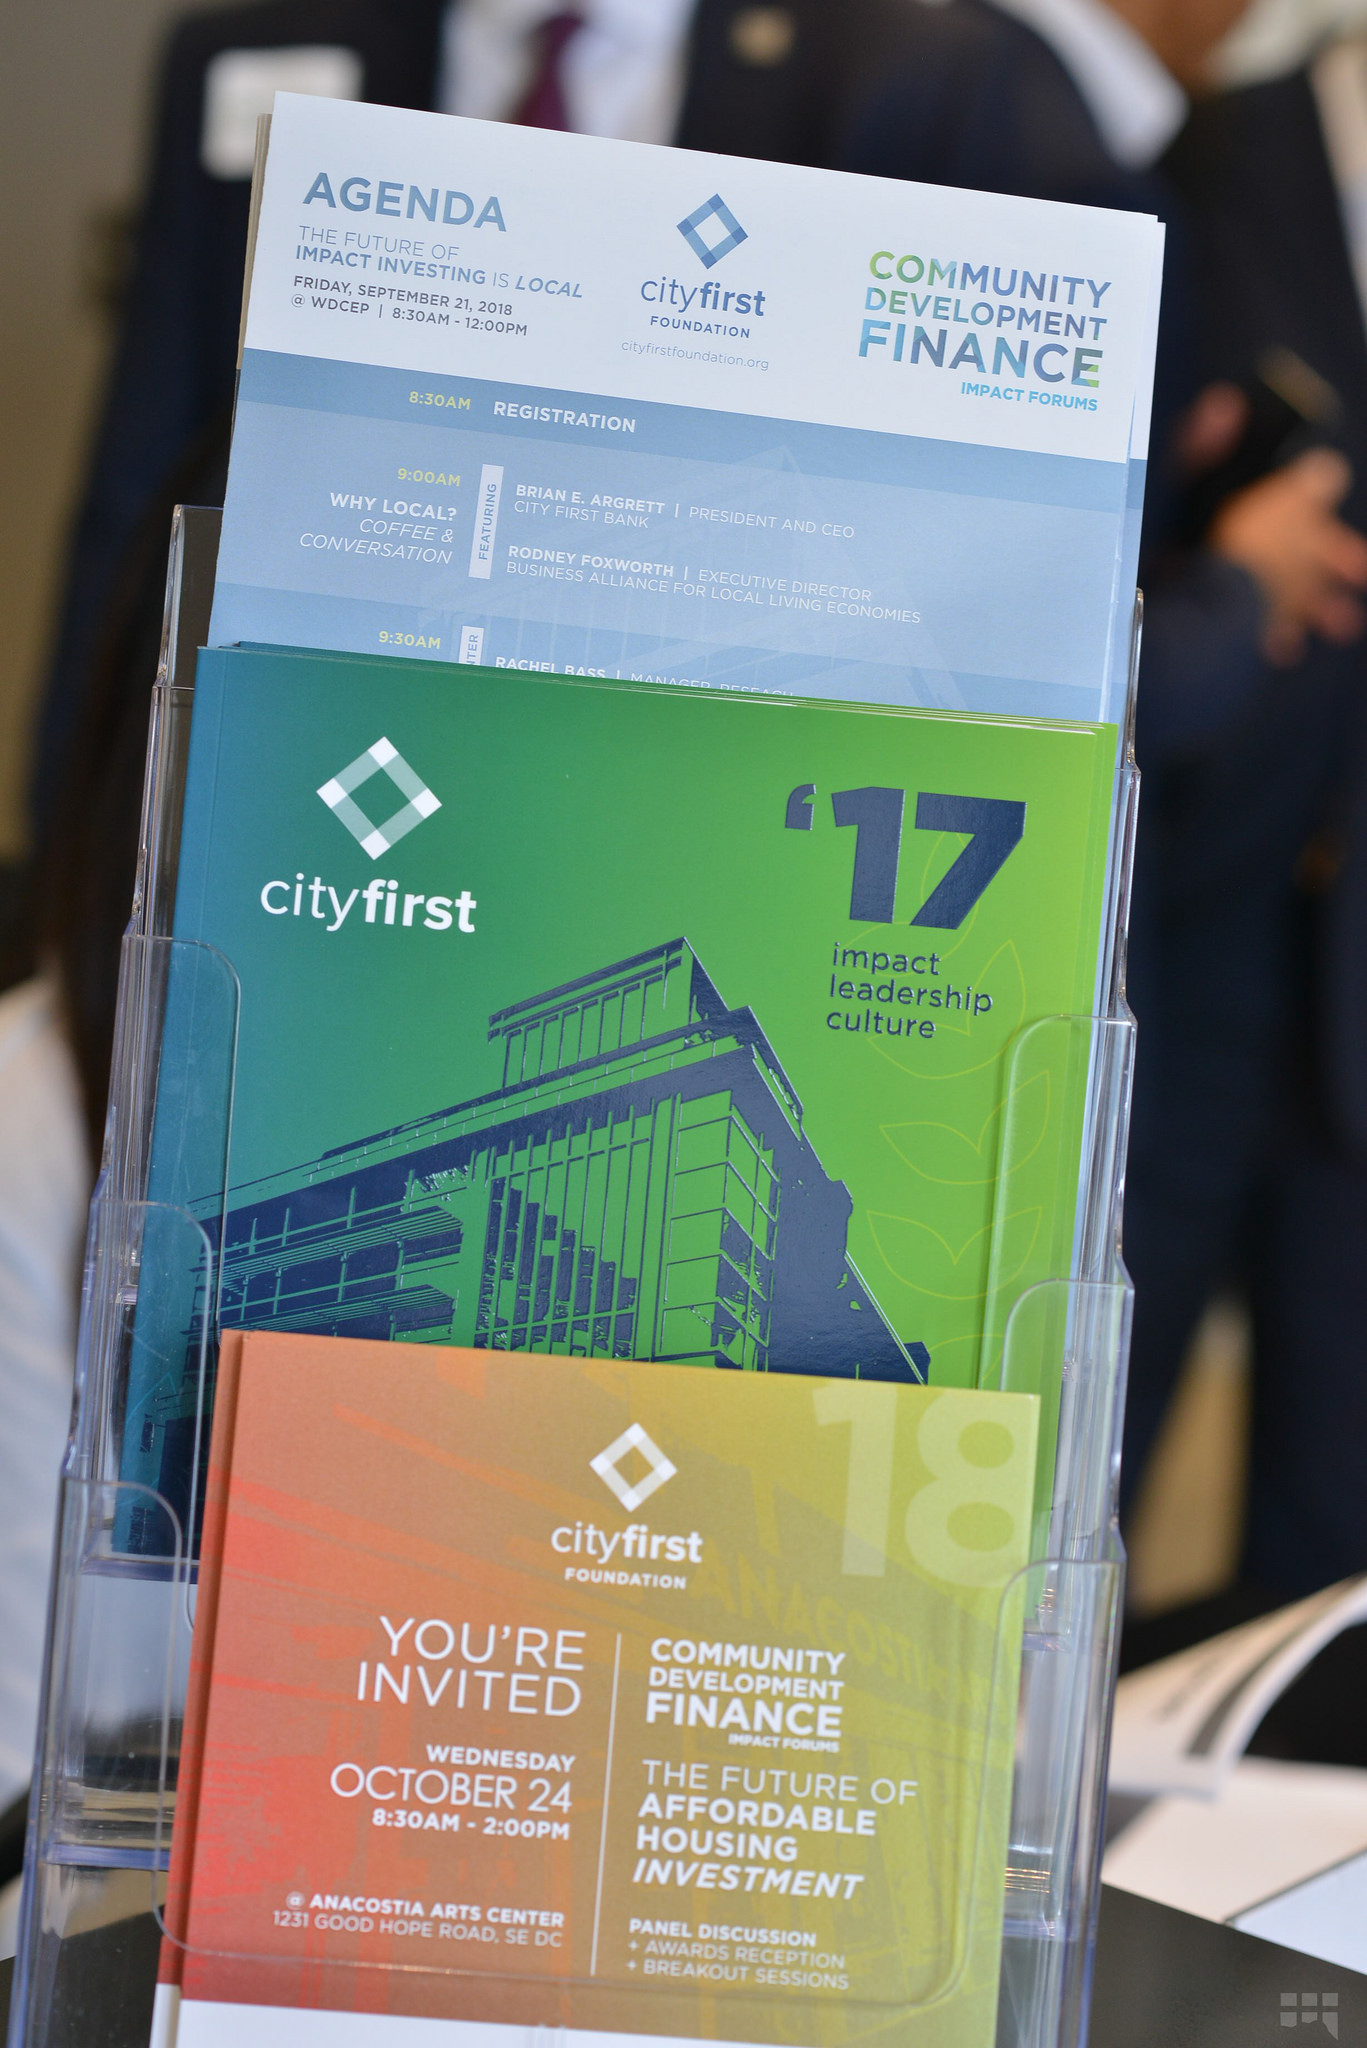 city first 2018 forum materials